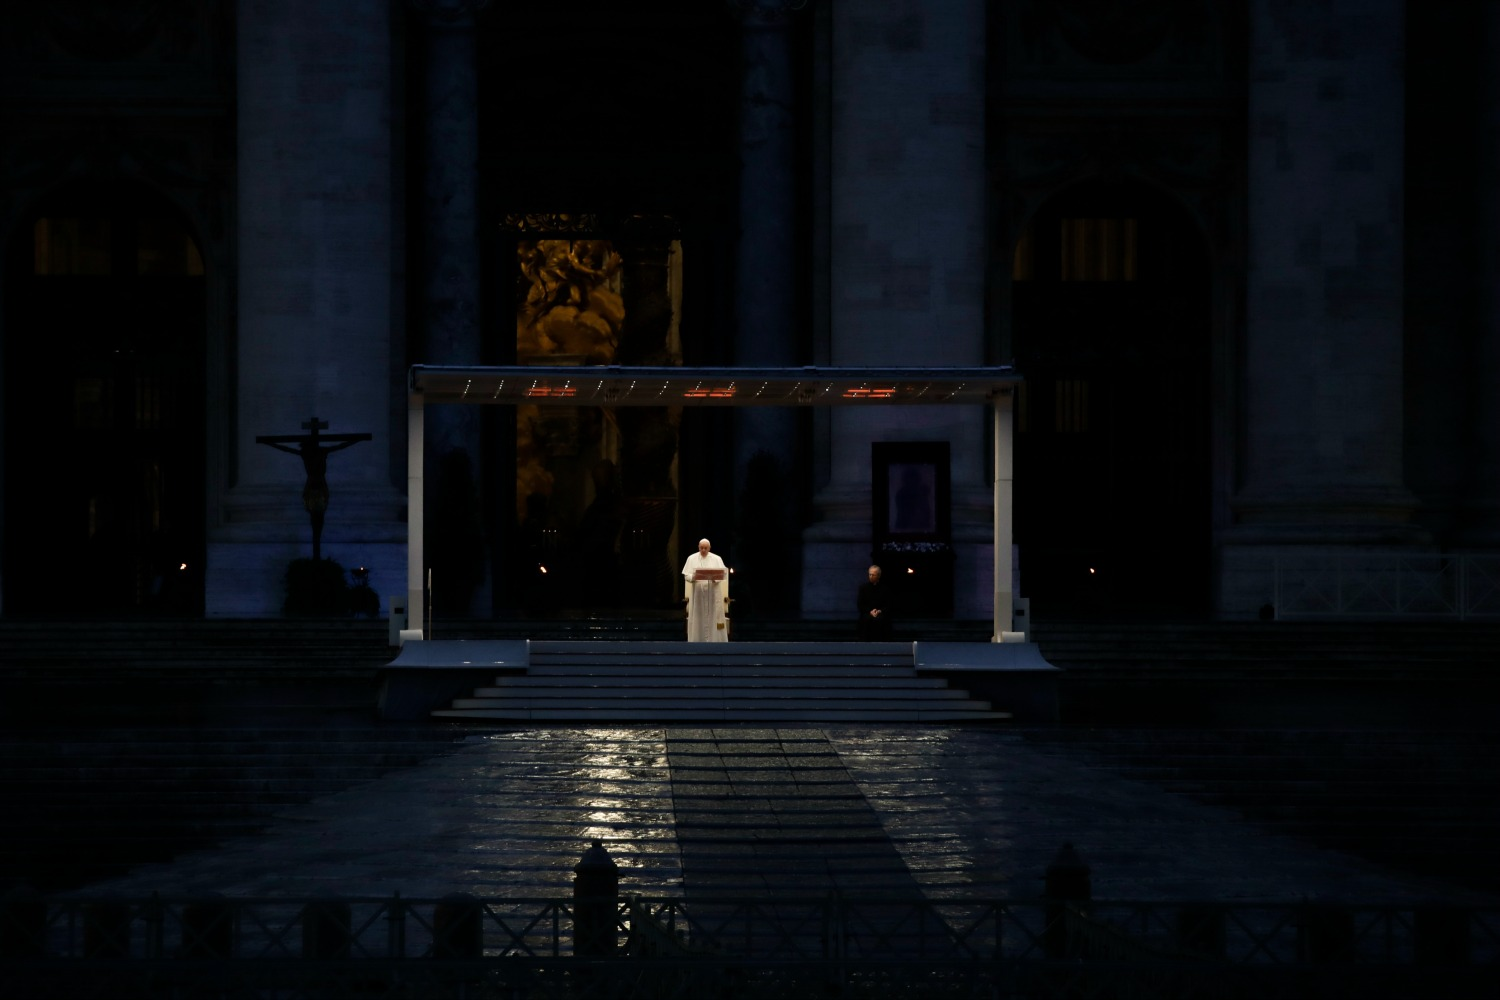 Pope Francis delivers a prayer in an empty St. Peter's Square.